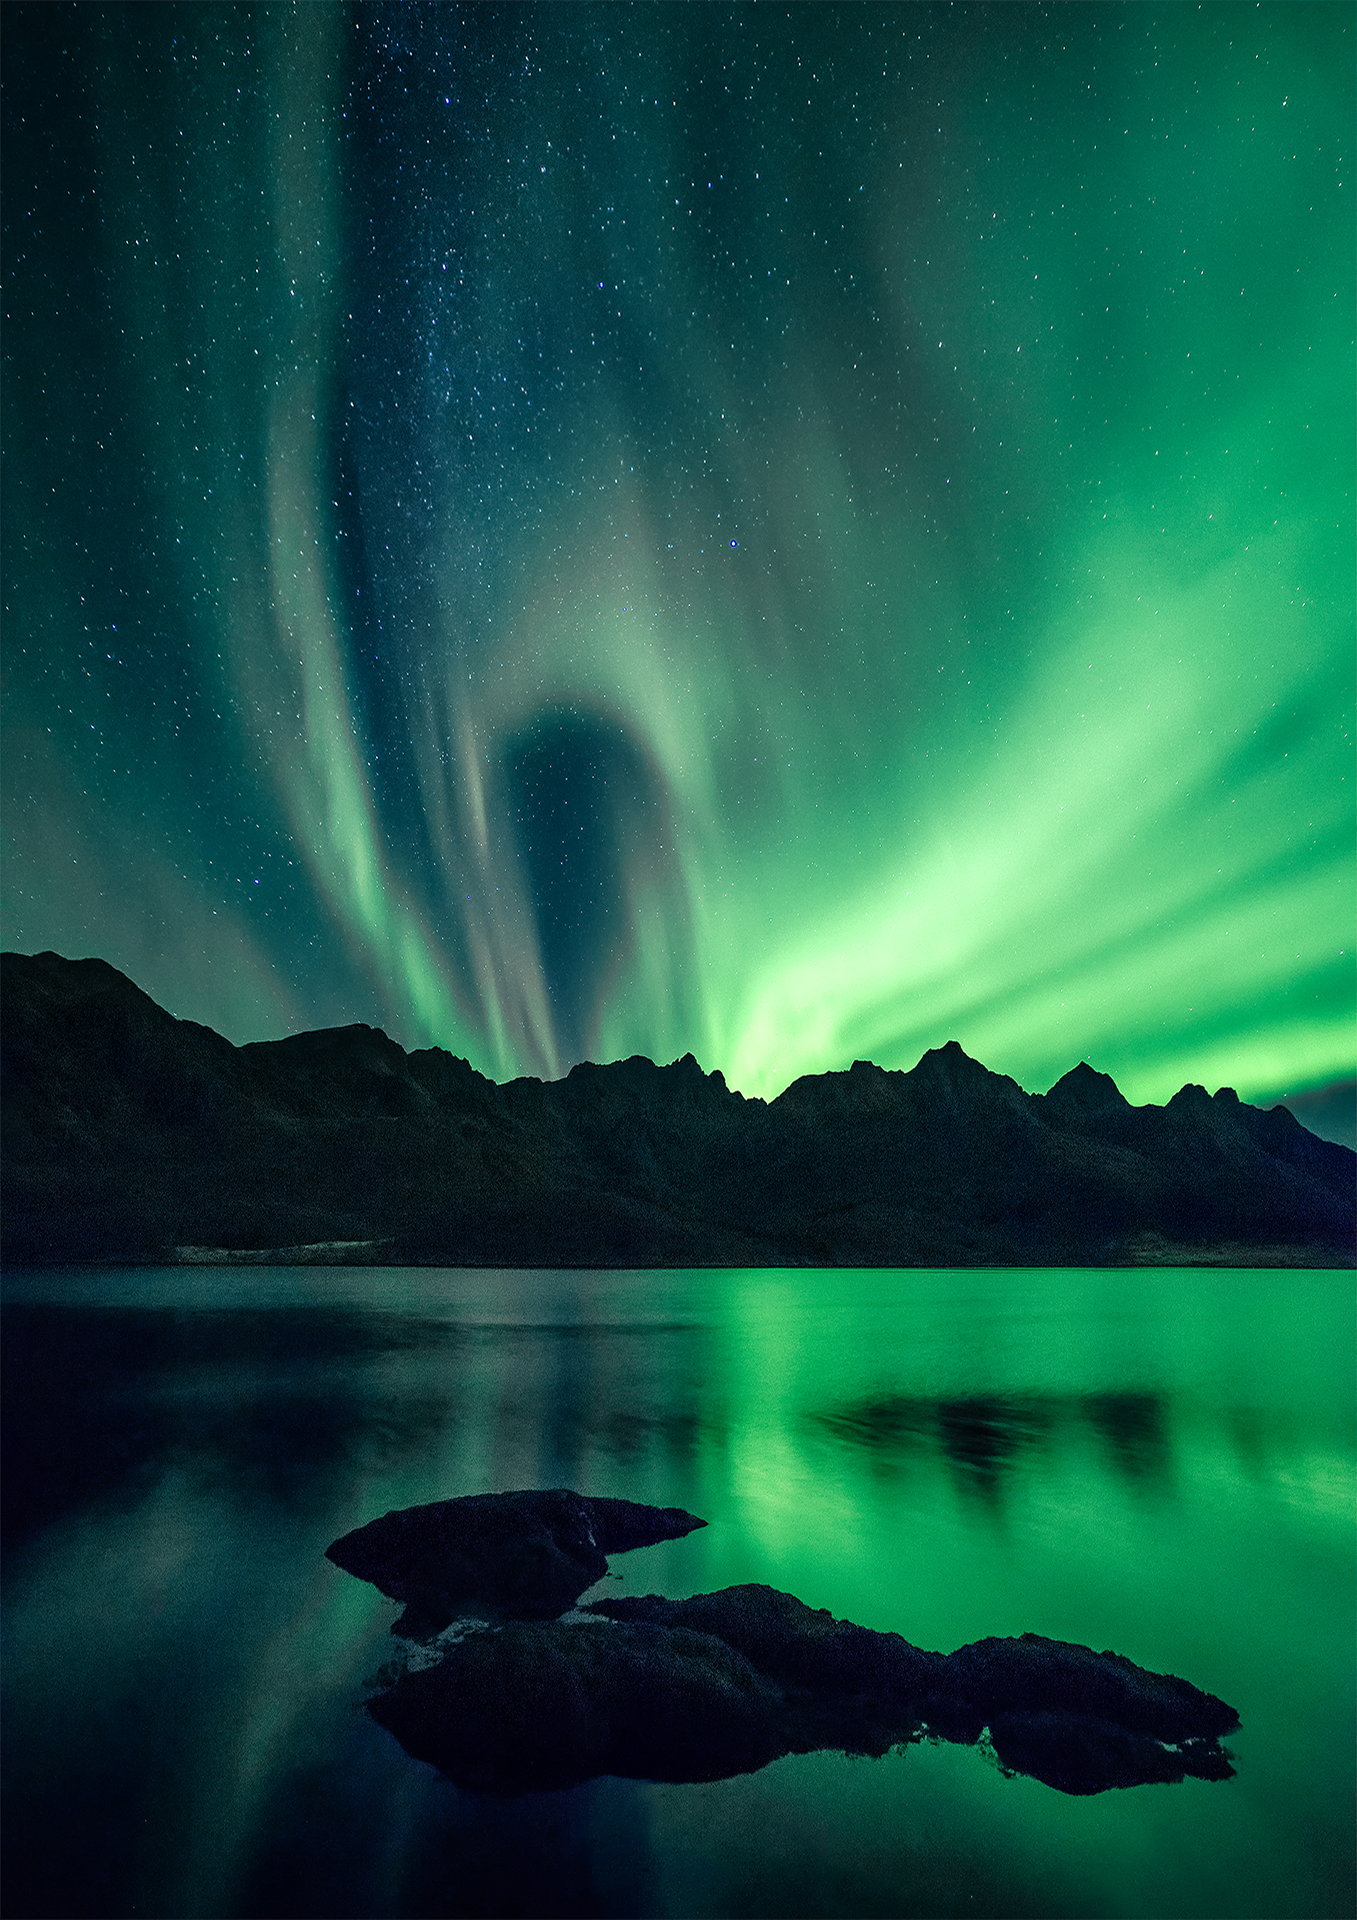 Steinlandsfjorden   Norse mythology- during every battle, odin would decide which warrior would die and join him in Valhalla. After their deat, they would be carried by the Valkyries to Odin and it is the reflection of the shining armor of these Valkyries that create the Northern Lights.